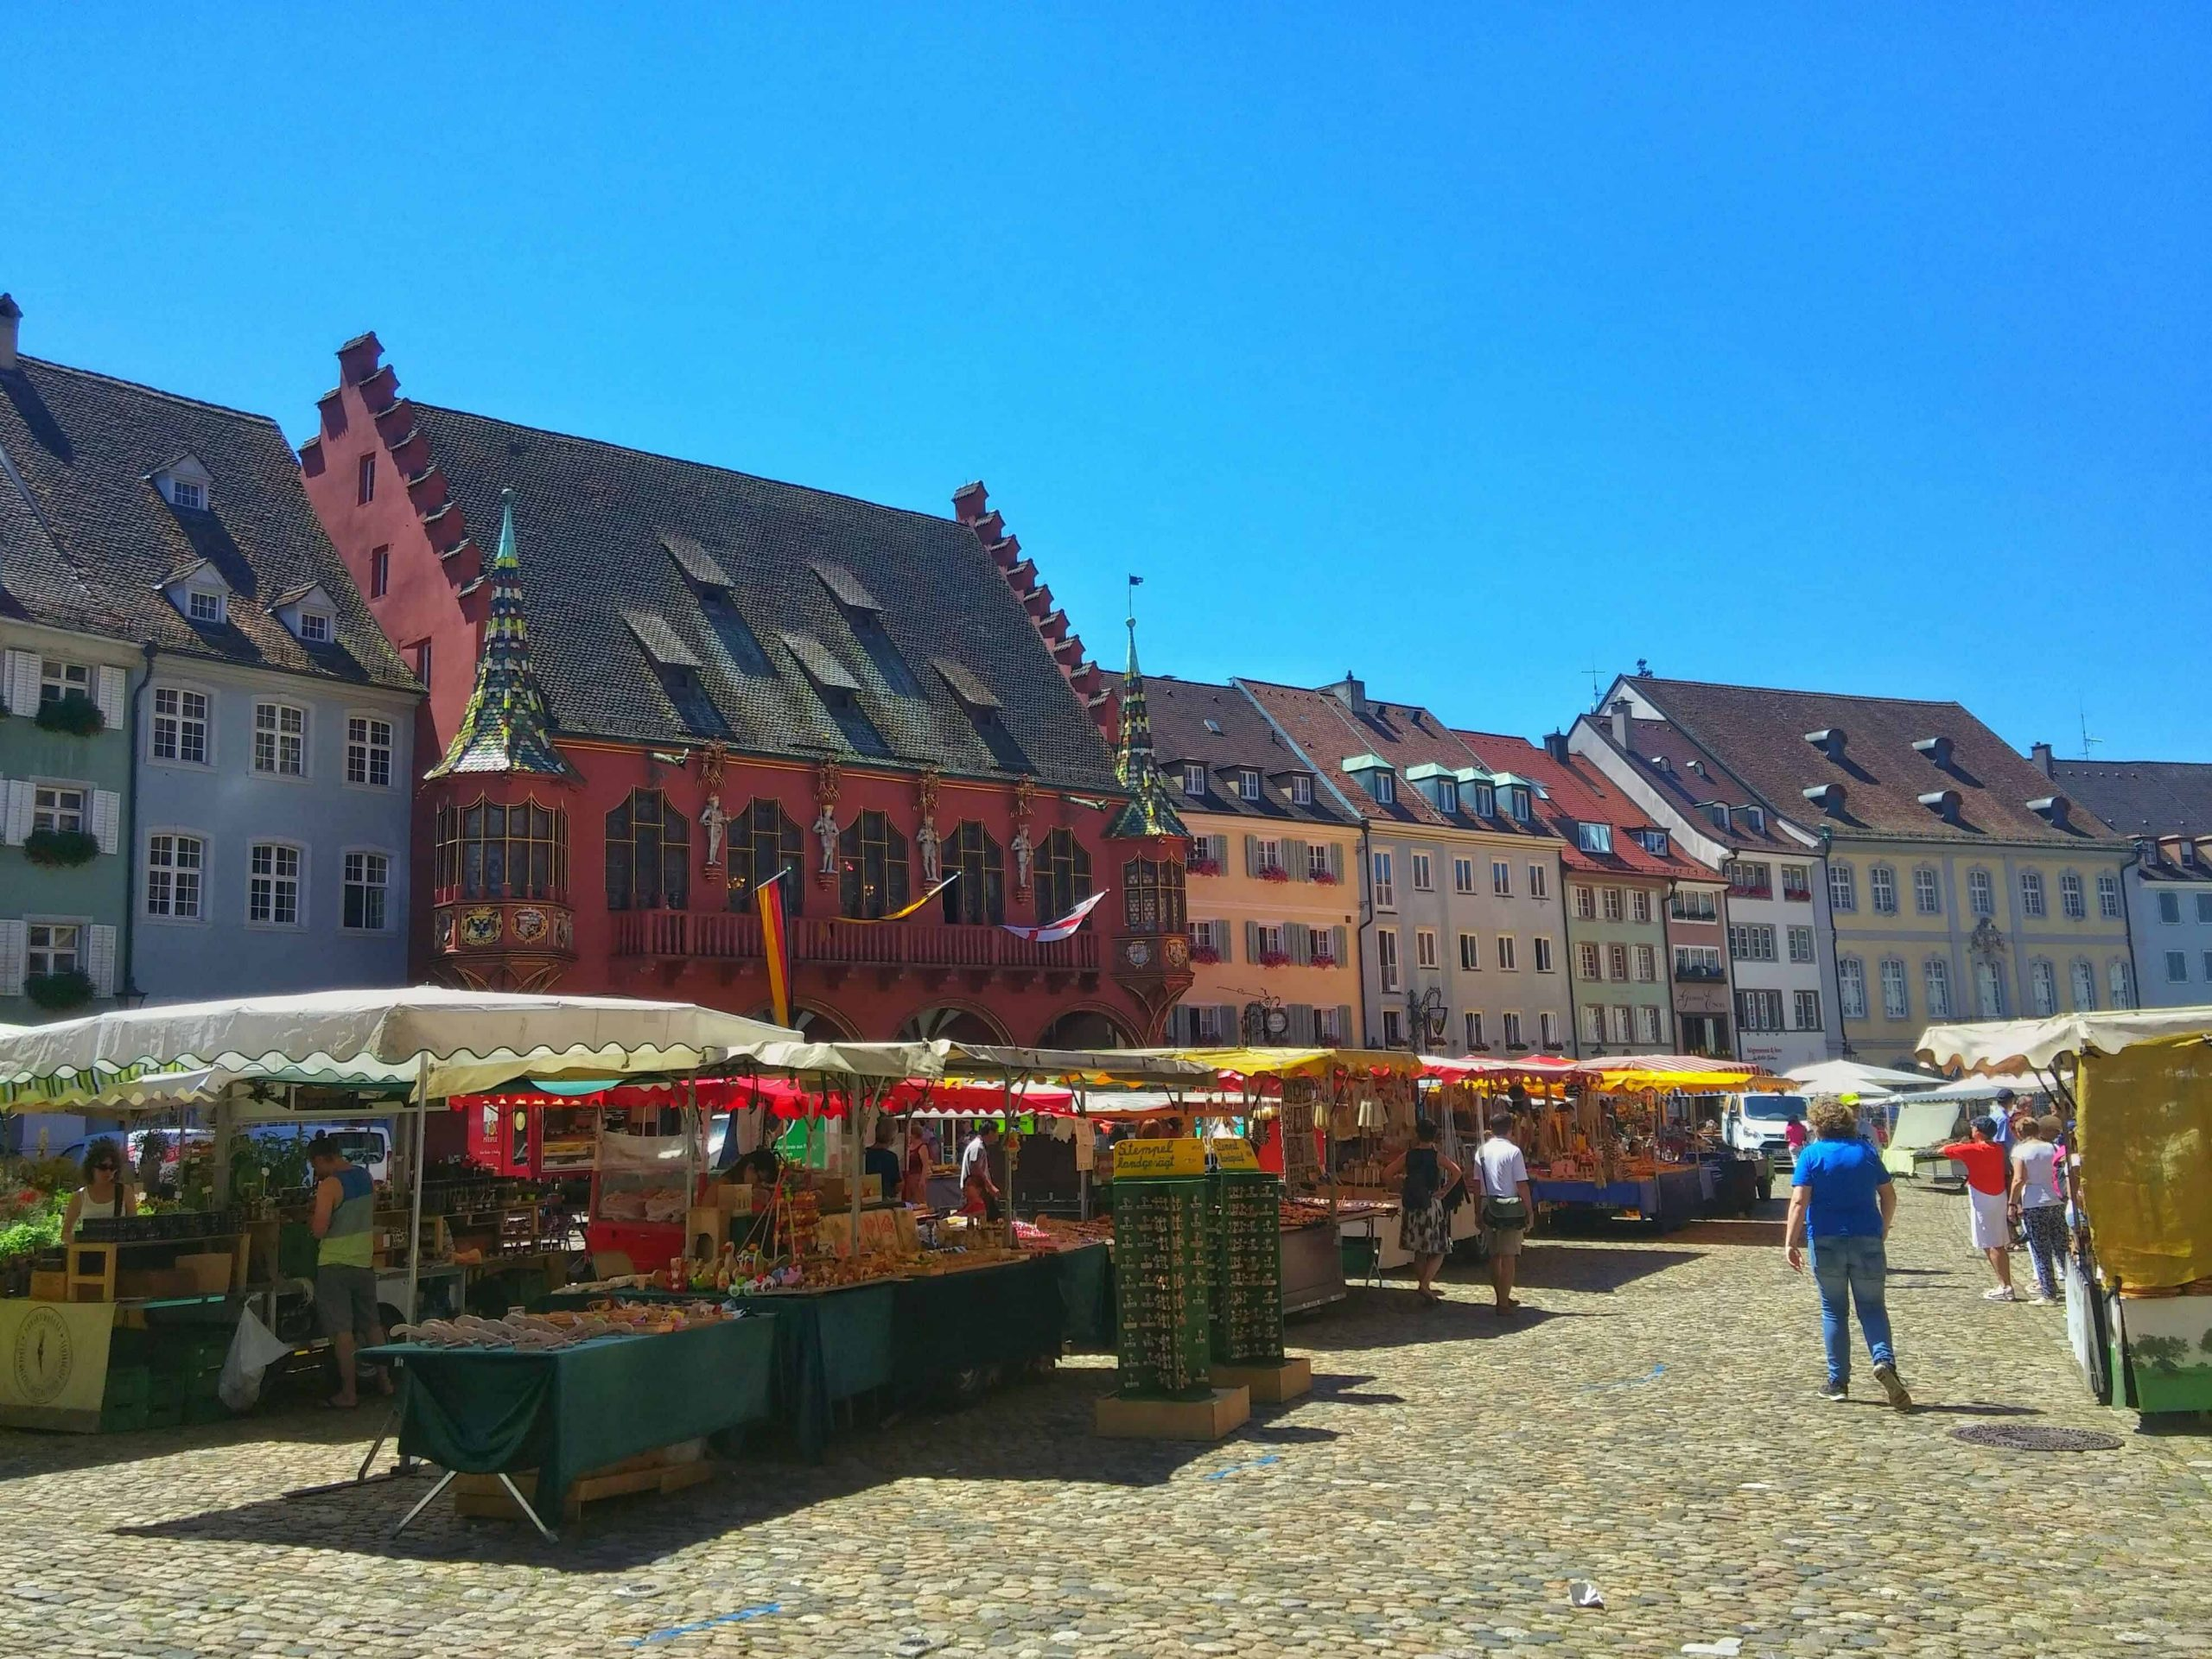 8 Things That Might Surprise You When Visiting Germany